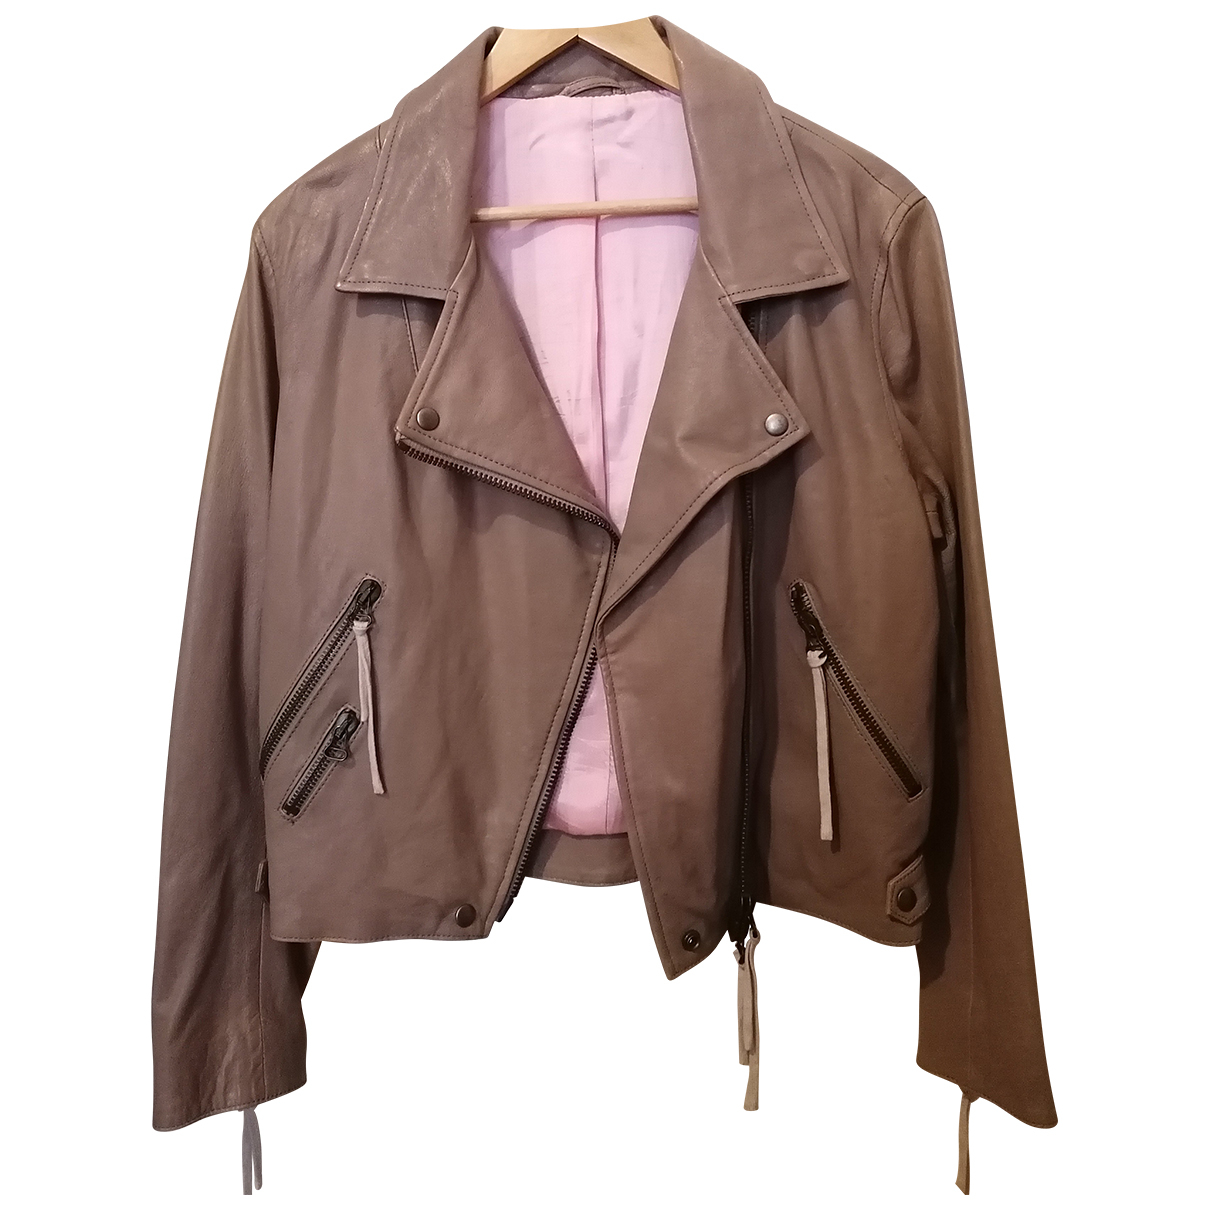 Acne Studios N Beige Leather Leather jacket for Women 40 IT